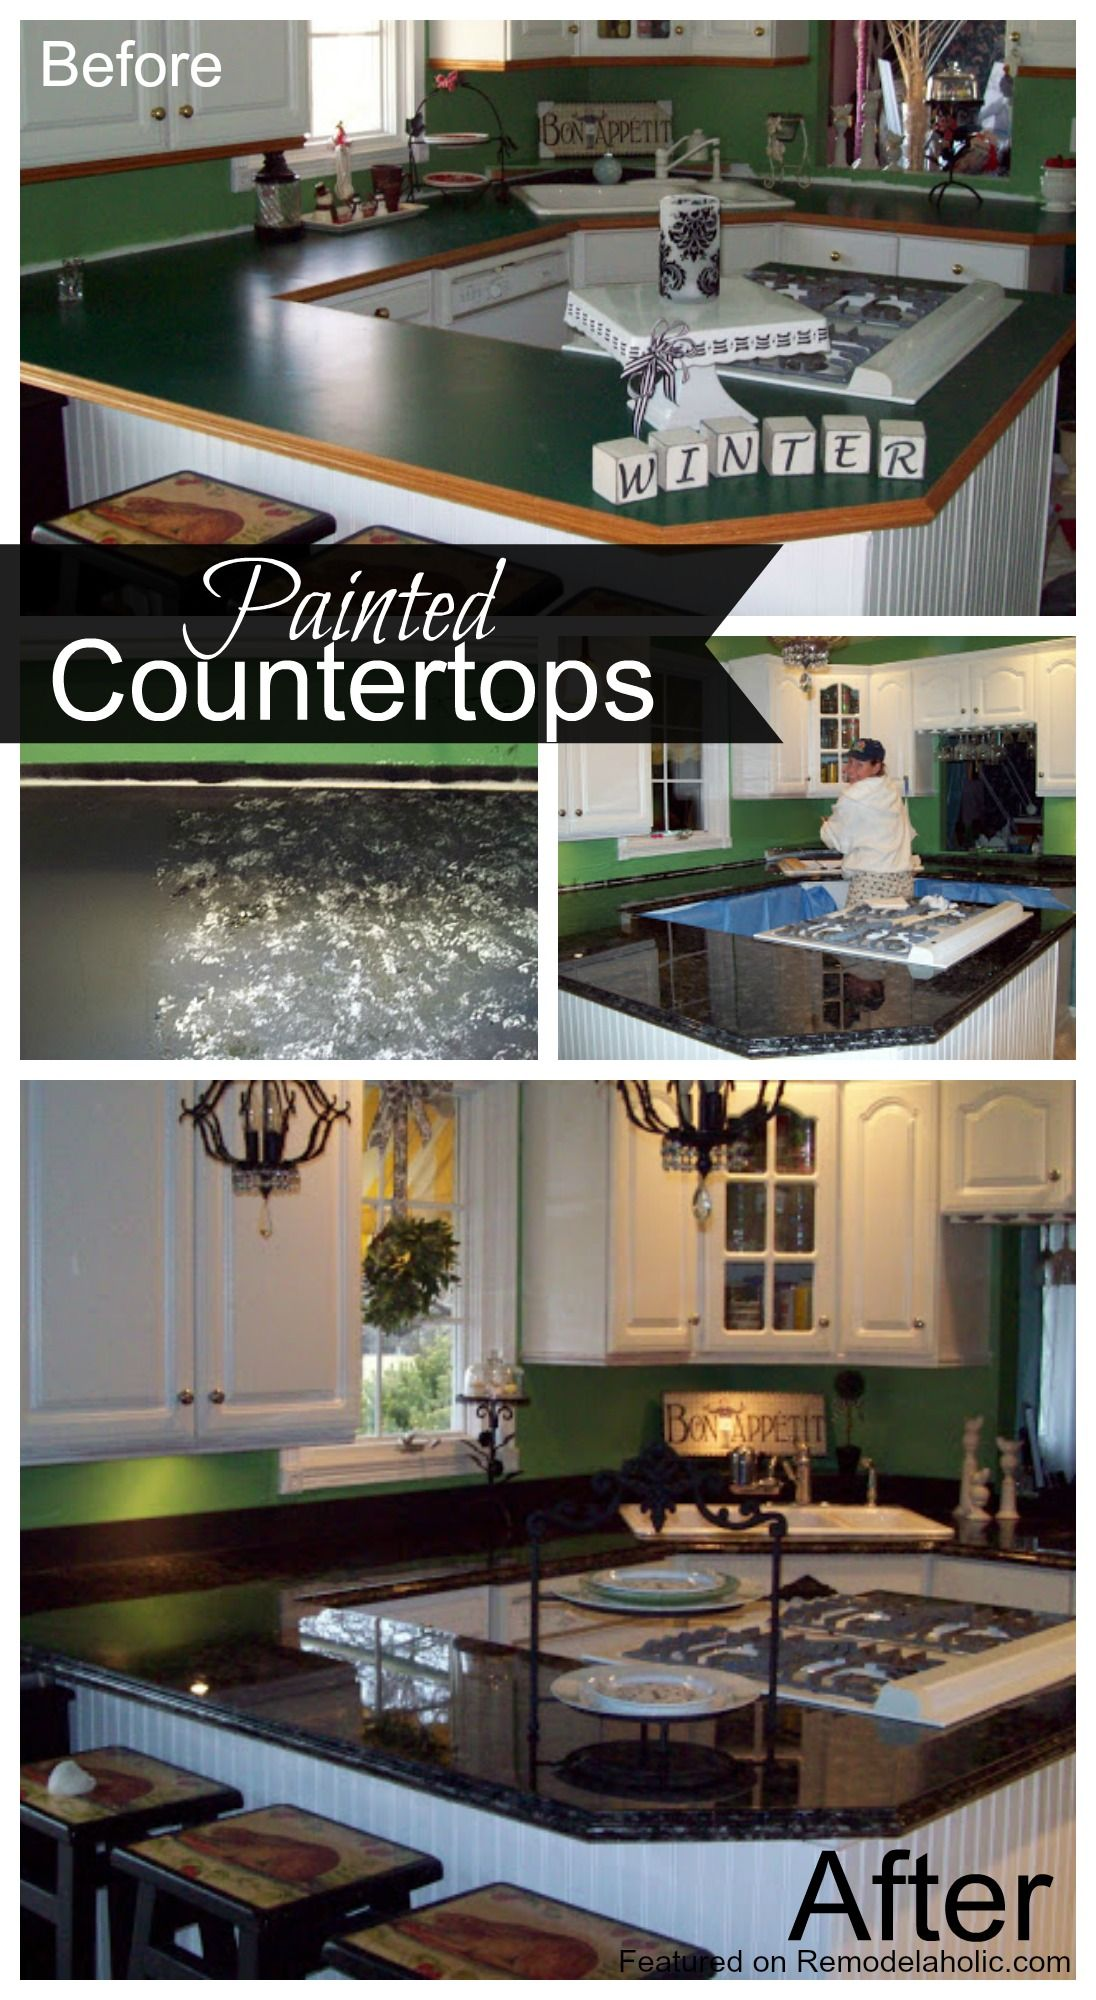 Painted Countertop Tutorial. She puts glitter under the resin ...